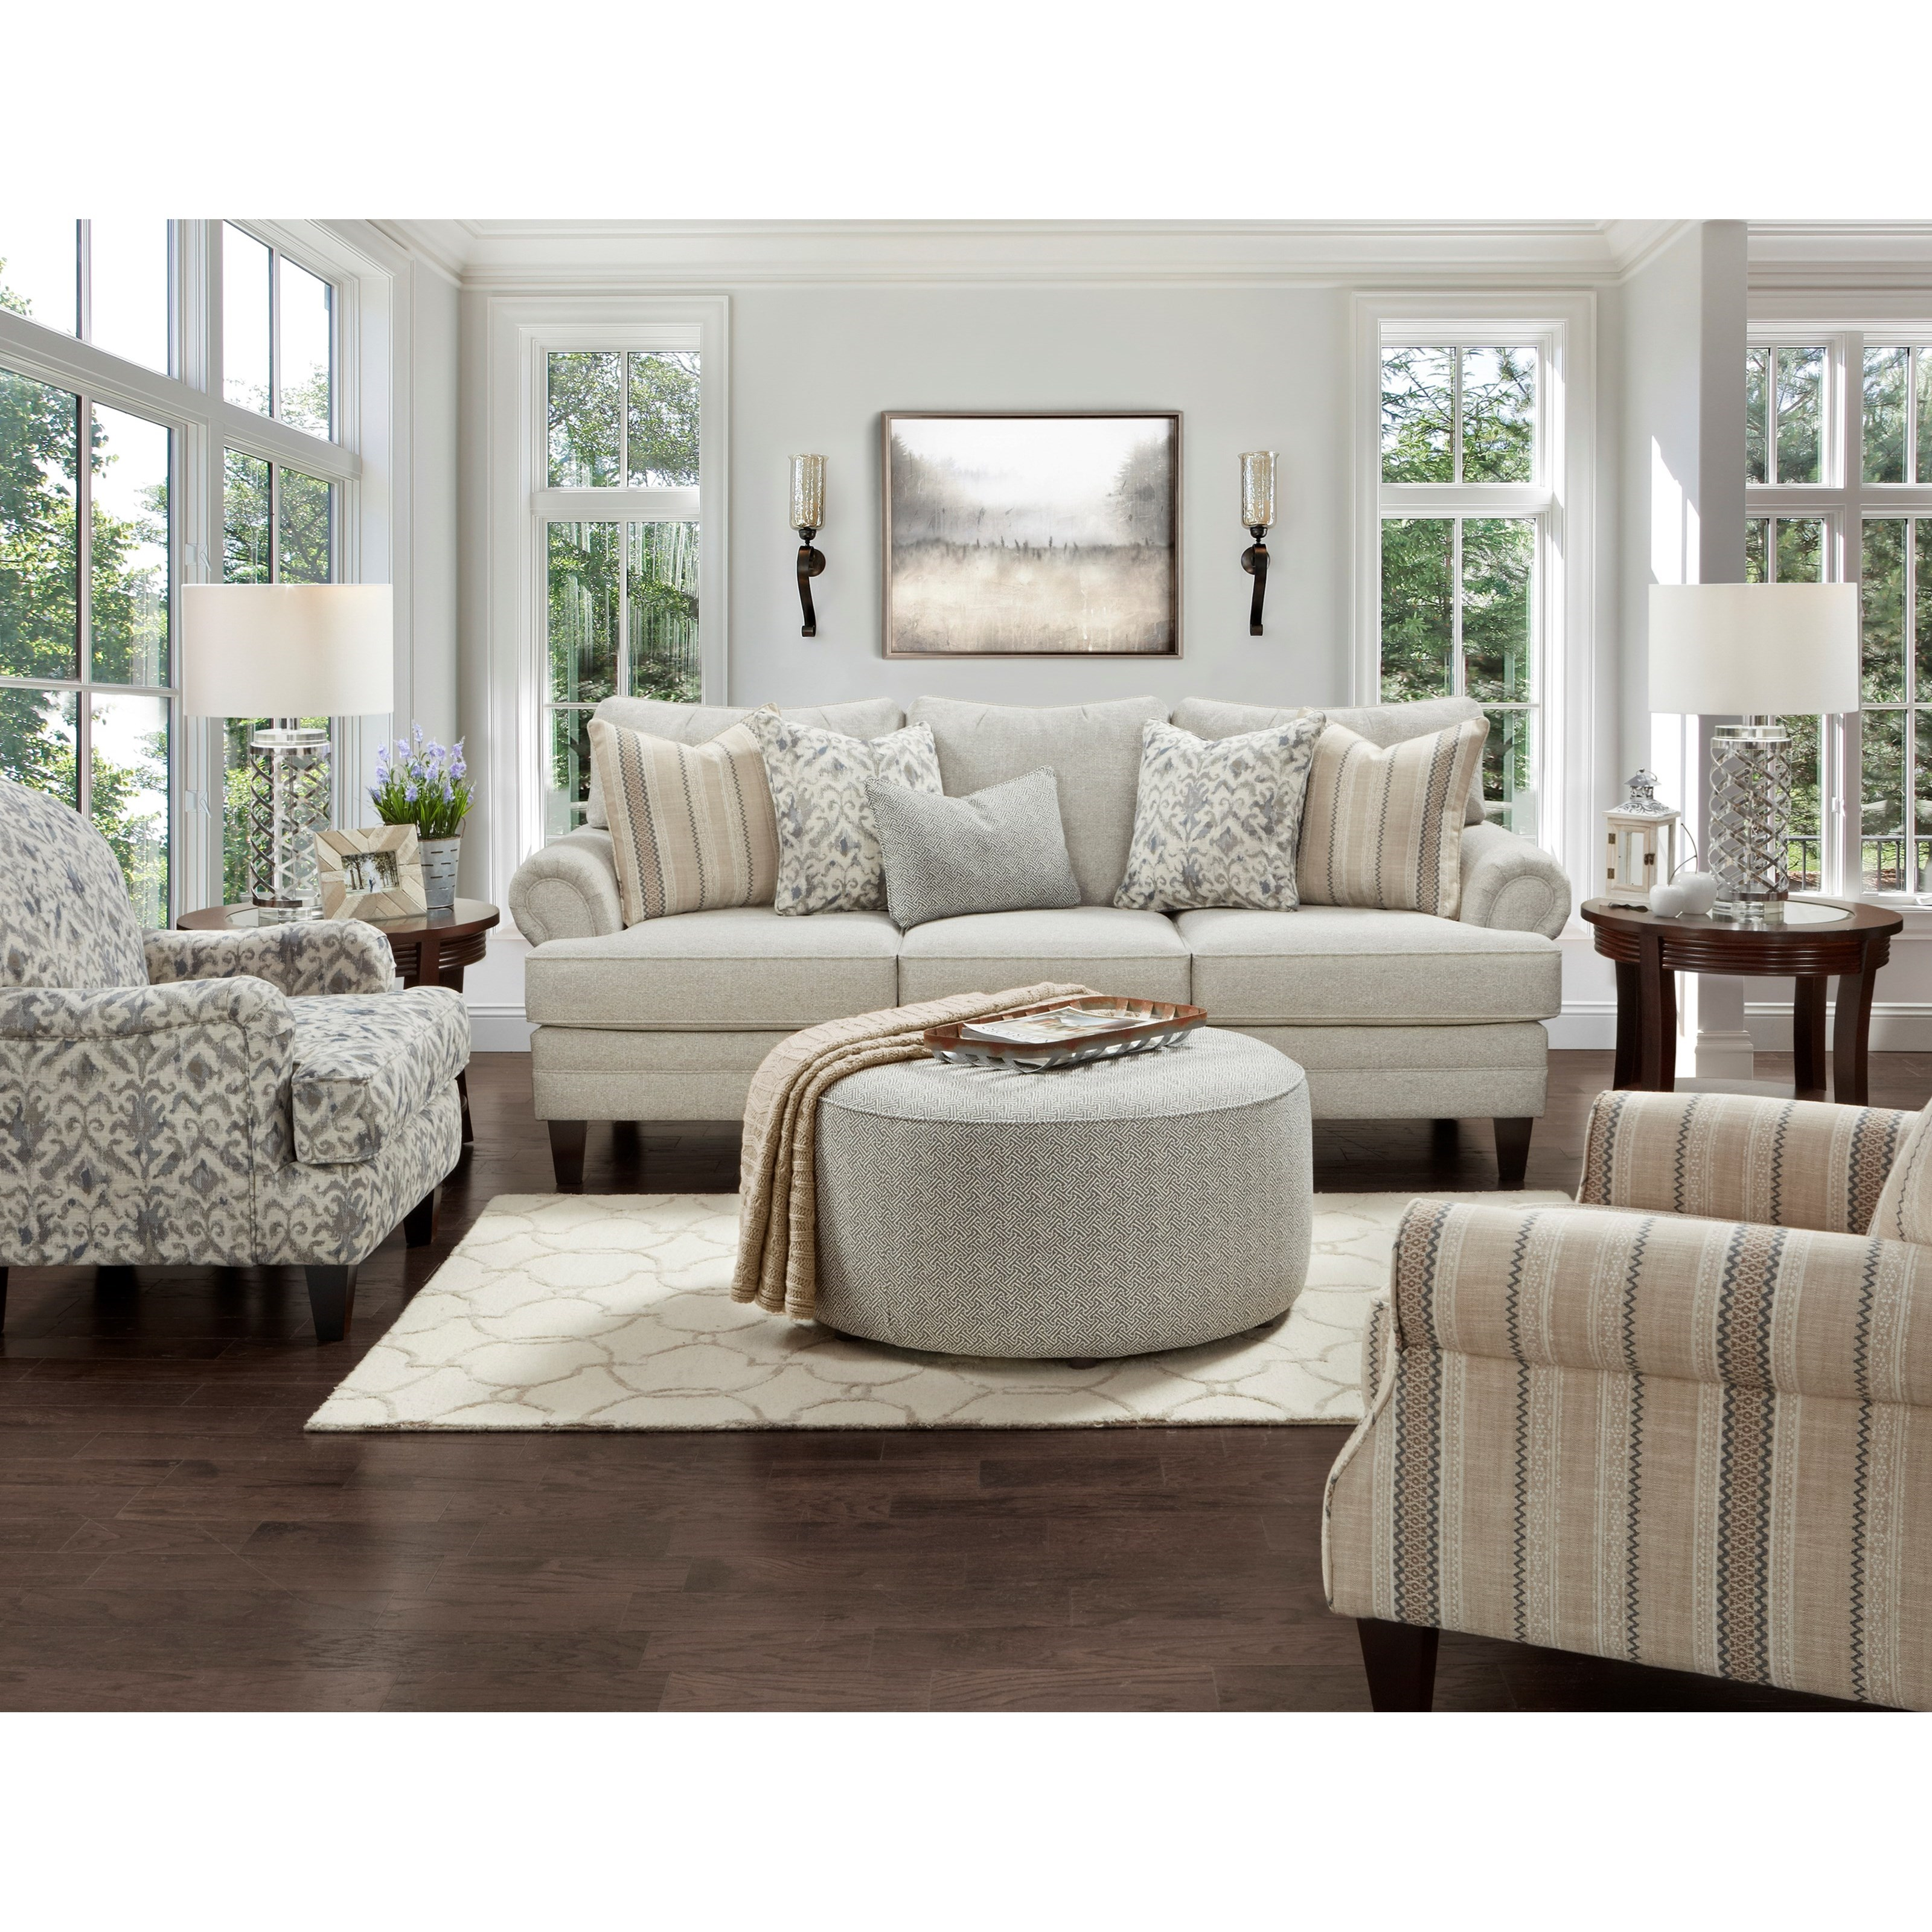 2800-KP Living Room Group by Fusion Furniture at Prime Brothers Furniture